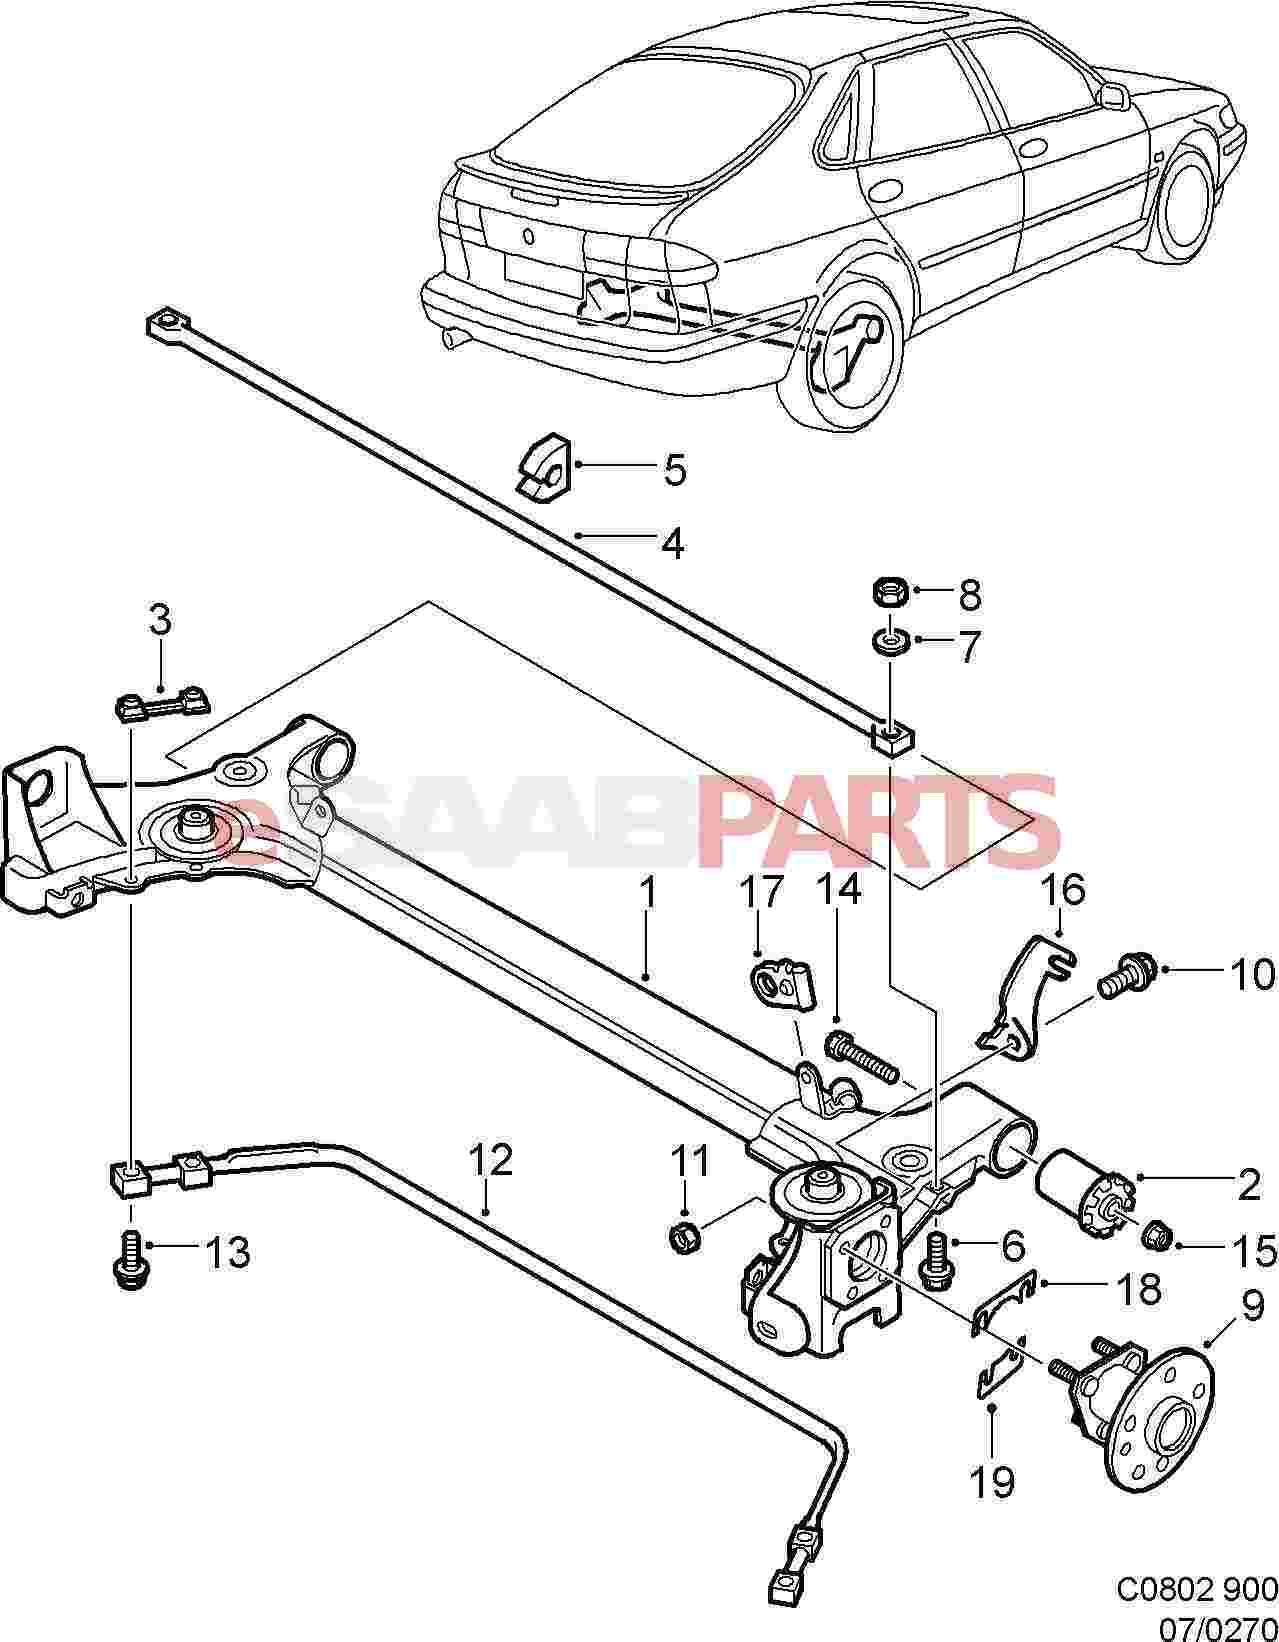 Sujet635154 likewise Fiat Palio 1 7 2002 Specs And Images likewise Showthread further Location Of Crank Sensor 2002 Vw Jetta 2 0 likewise Mitsubishi Galant 2 0 1991 Auto Images And Specification With Regard To 2002 Mitsubishi Galant Engine Diagram. on 2003 saab 9 3 2 0 turbo